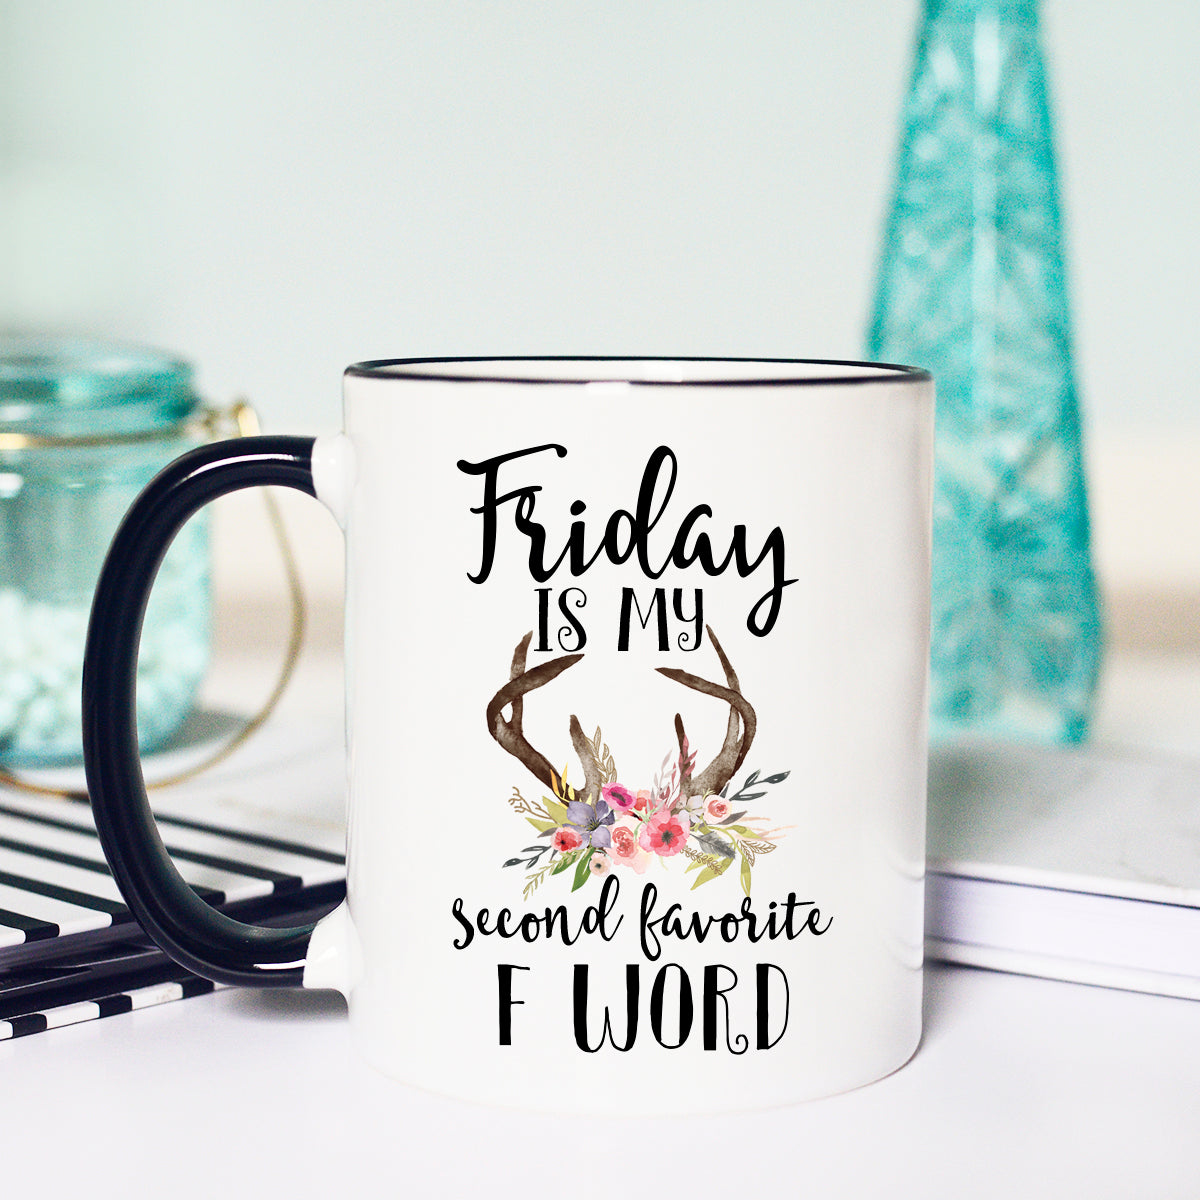 Funny Friday mug